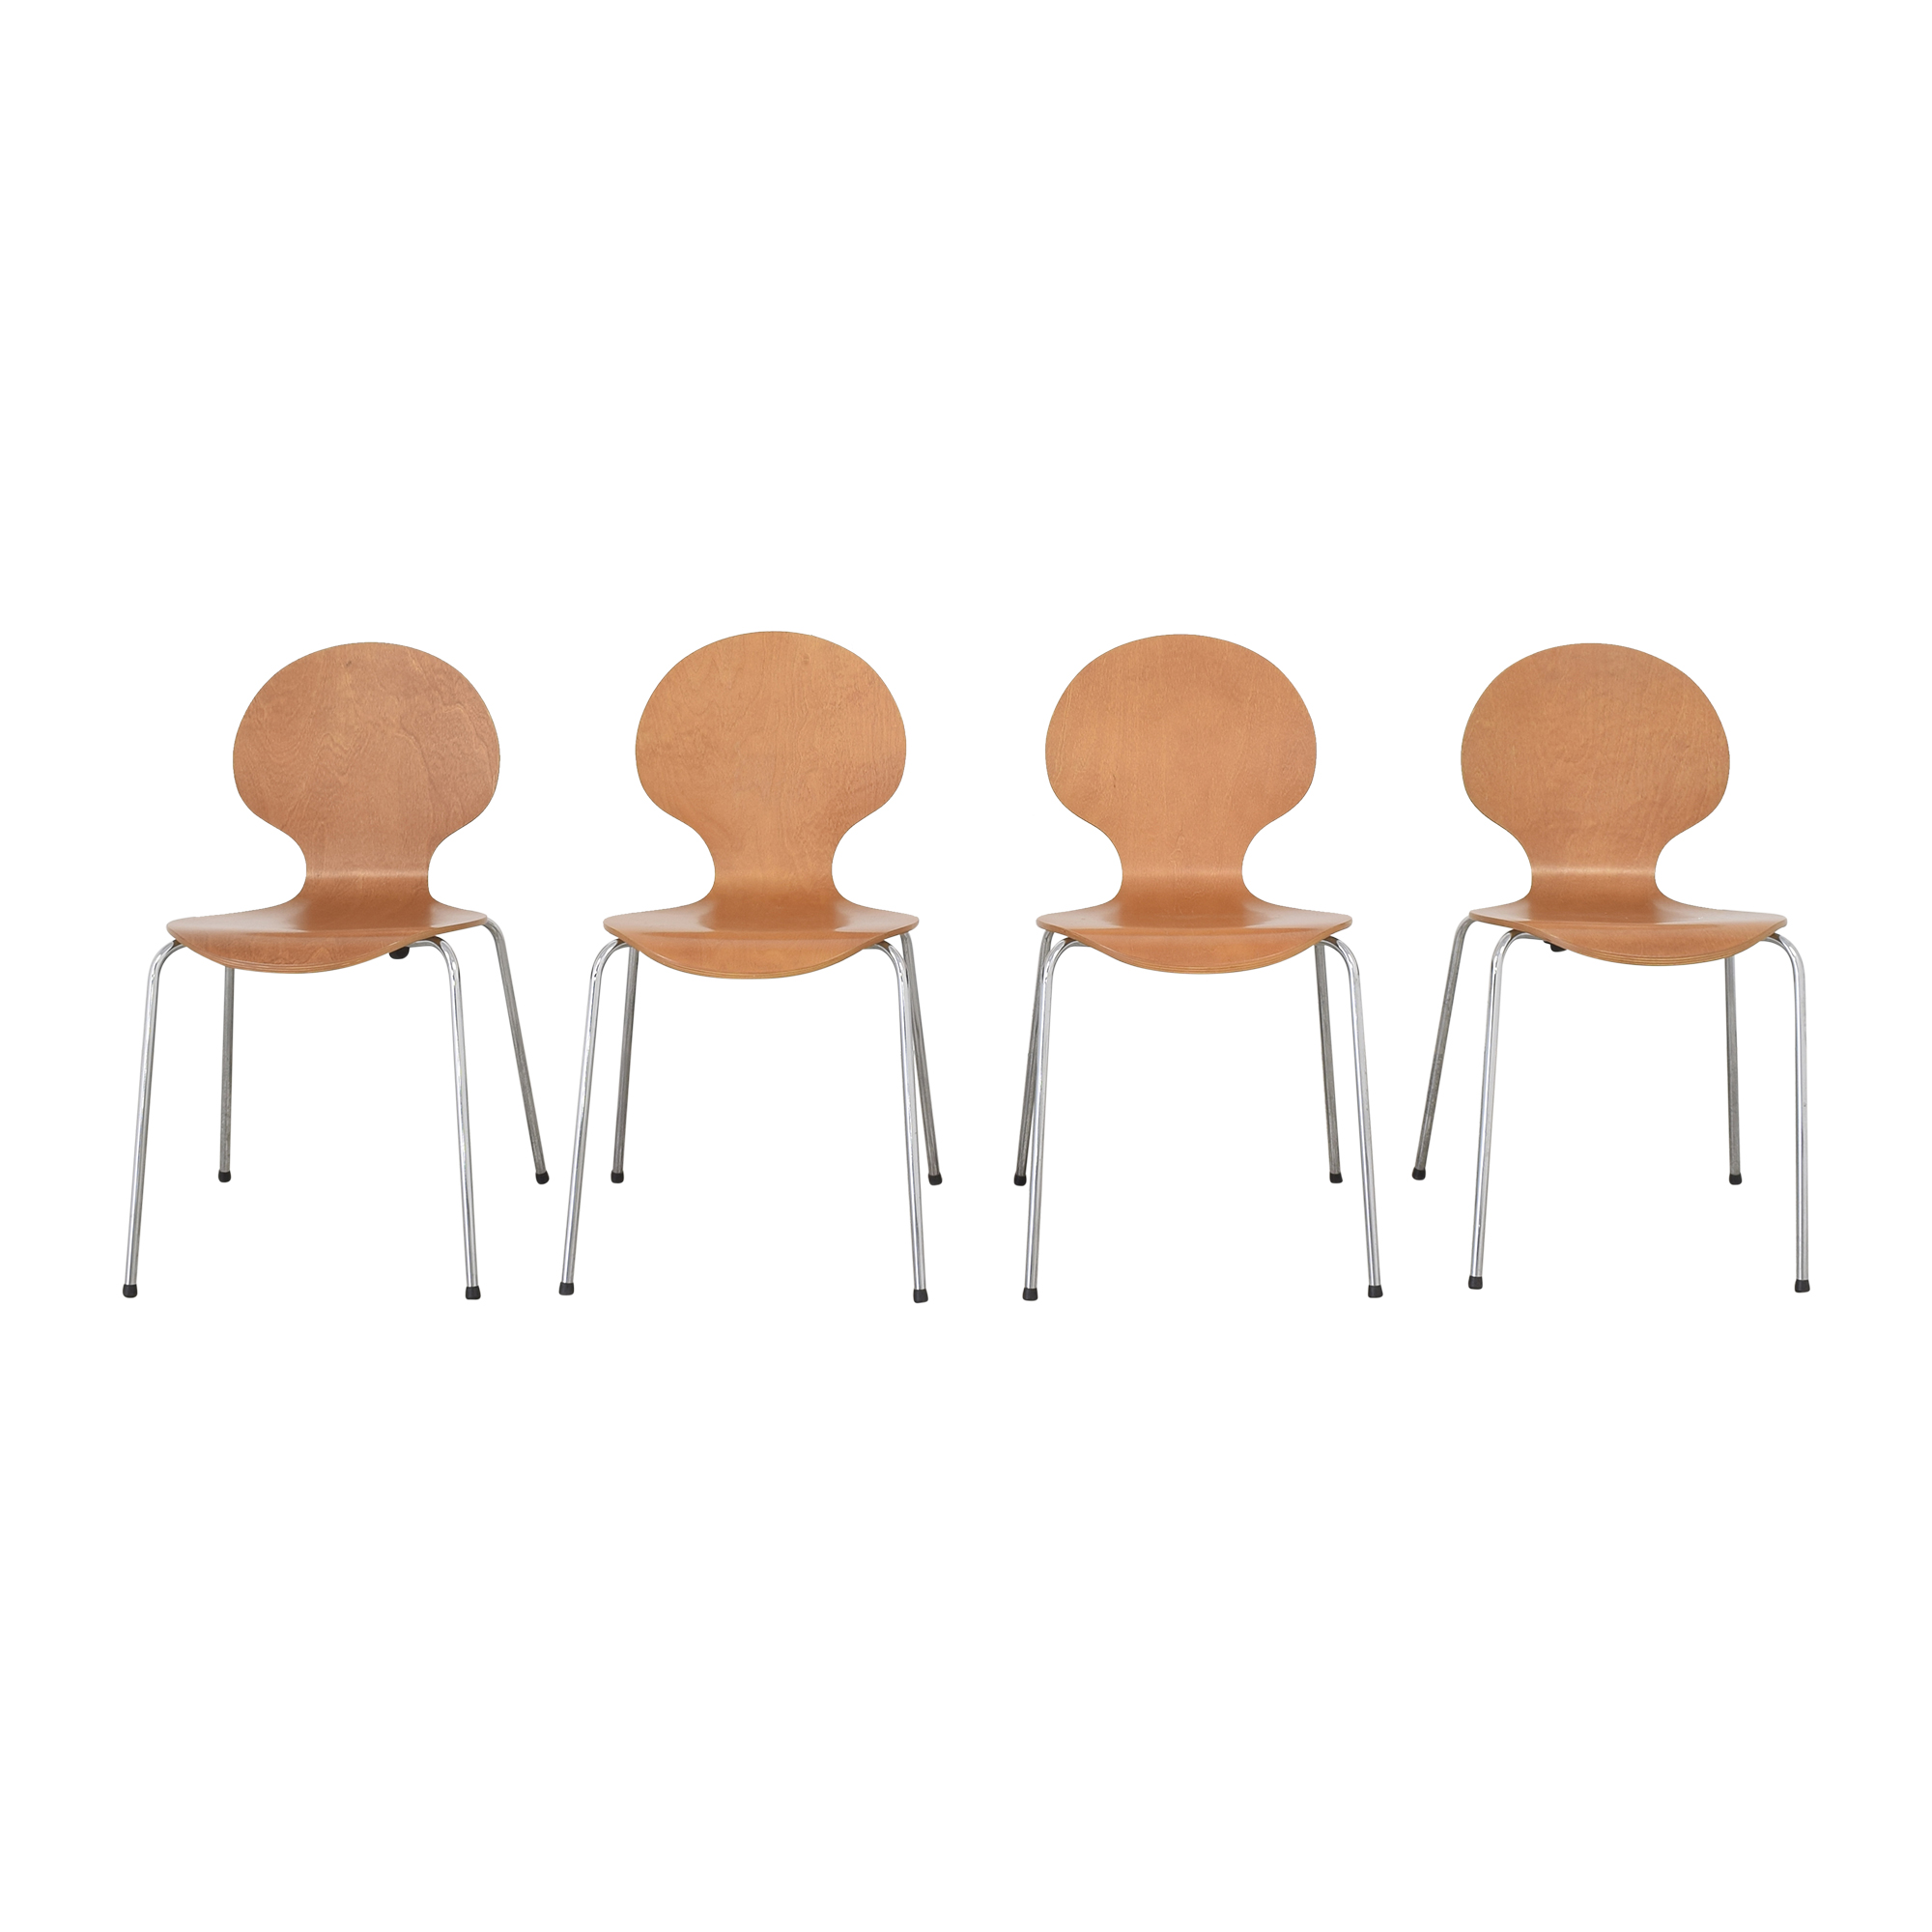 CB2 CB2 Modern Dining Chairs second hand